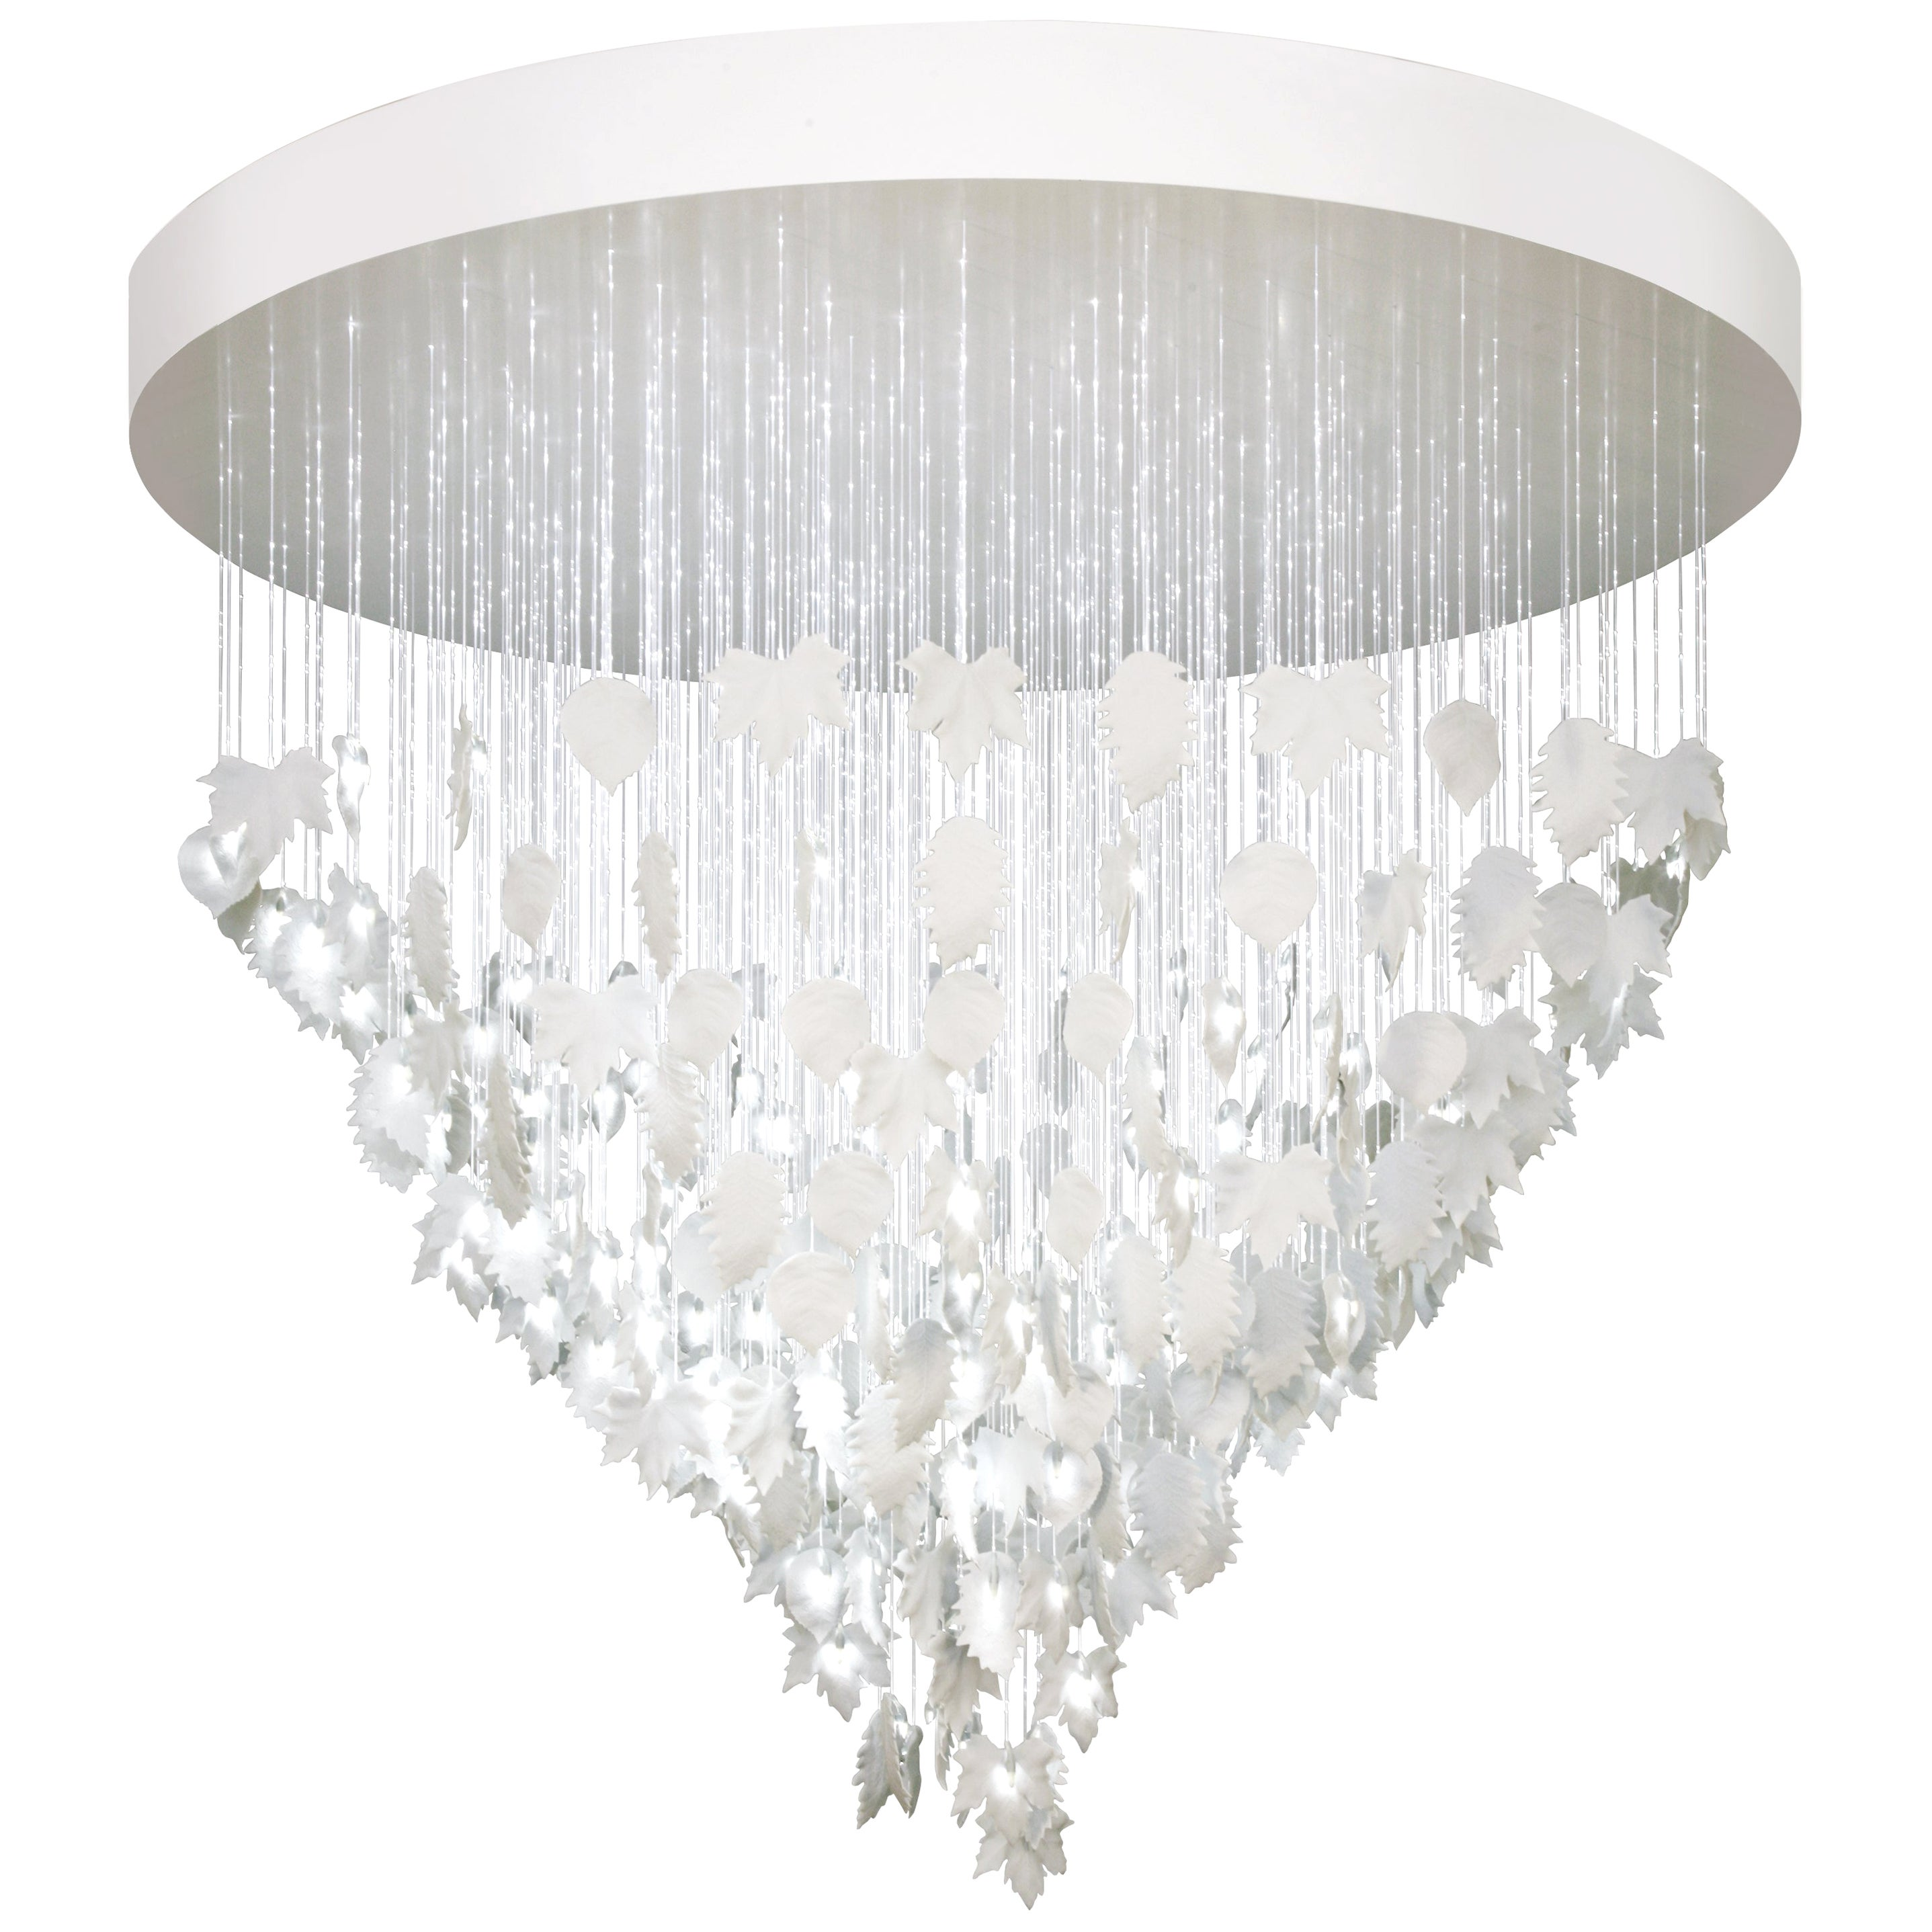 coffee cup chandelier Google Search | Chandelier lighting